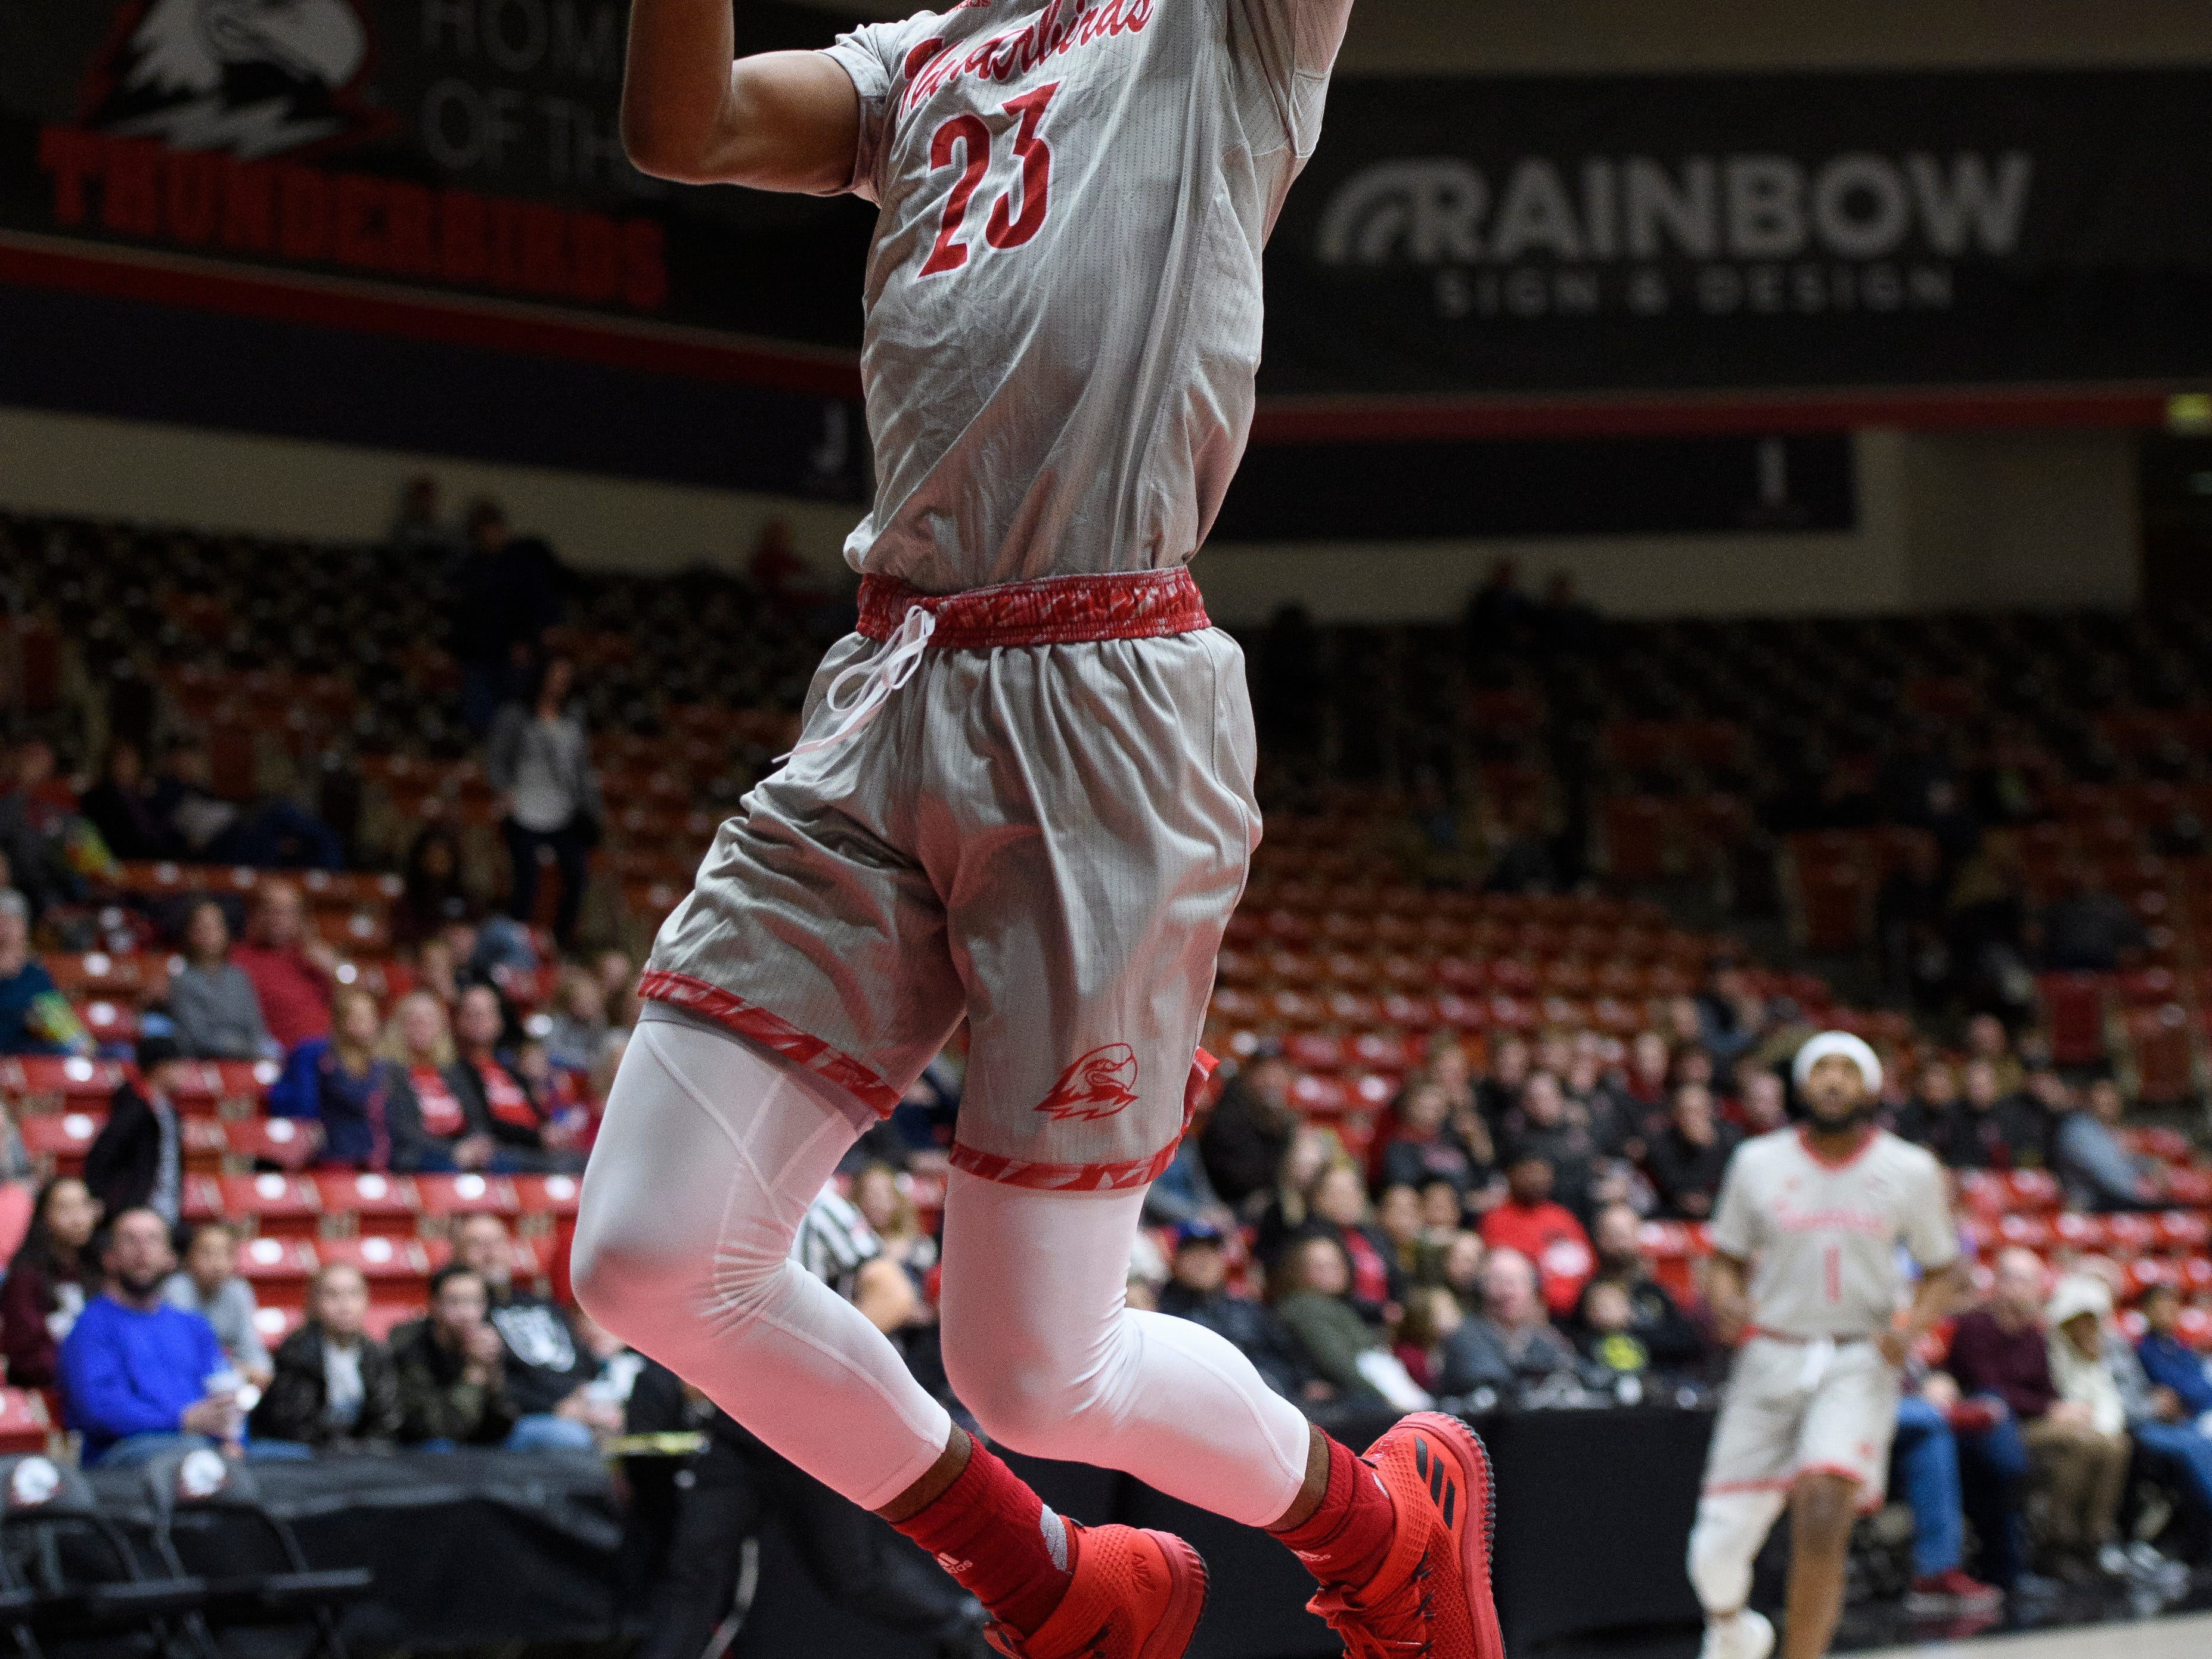 Southern Utah University junior Andre Adams (32) shoots a breakaway layup against Montana State in the America First Event Center Saturday, December 29, 2018. SUU lost, 92-62.